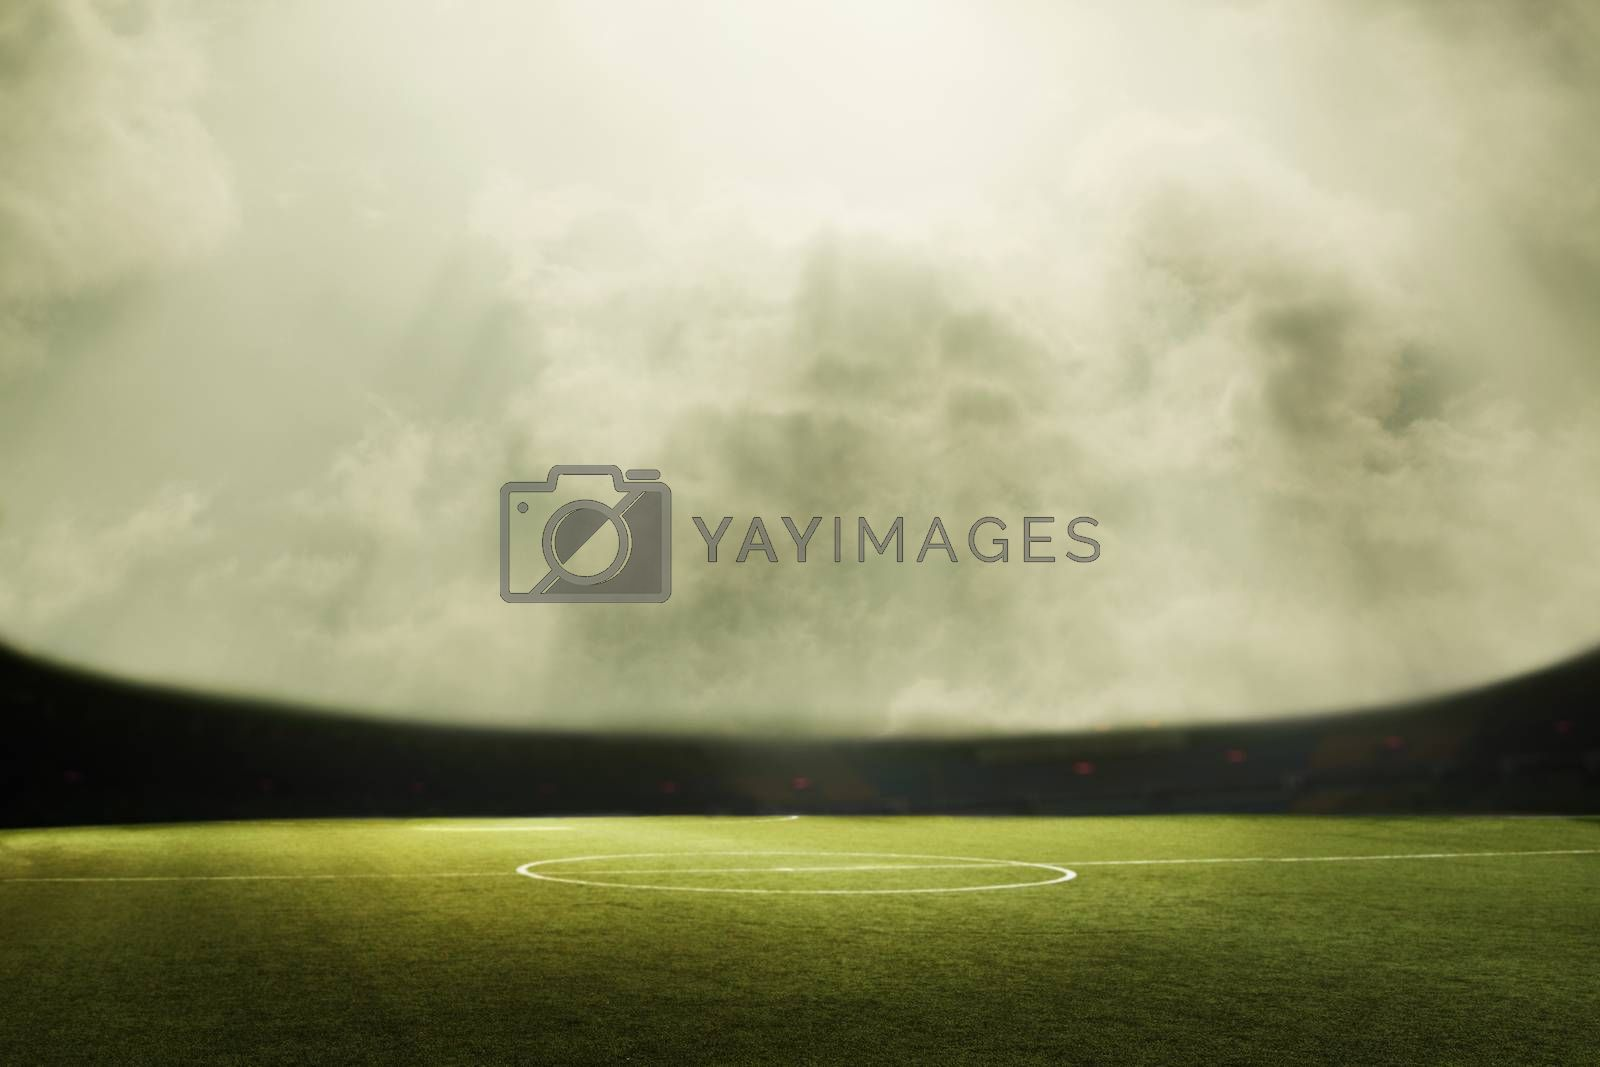 Digital composit of soccer field and cloudy sky by XiXinXing